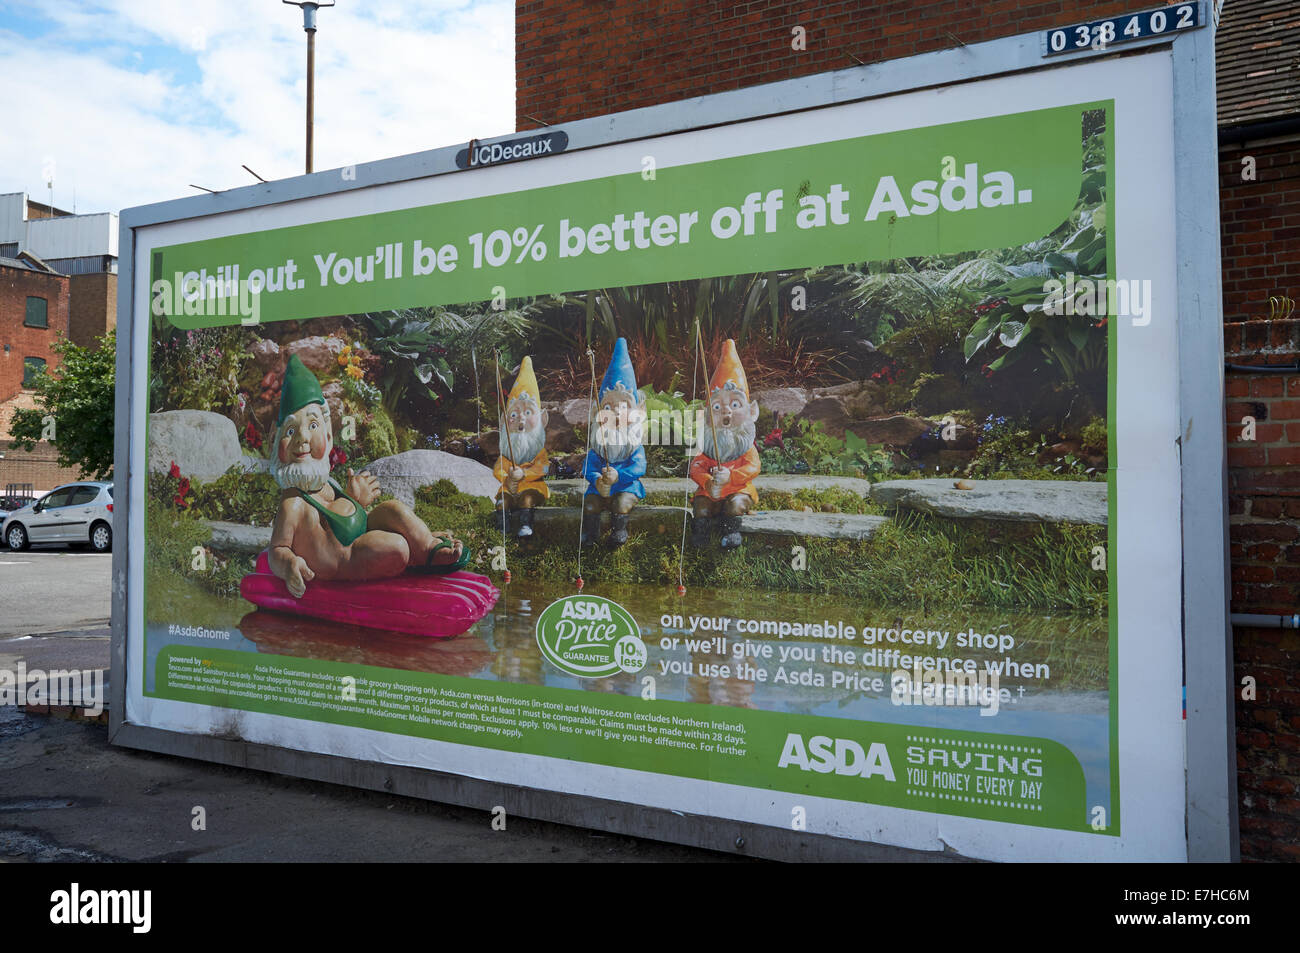 Asda supermarket billboard - Stock Image